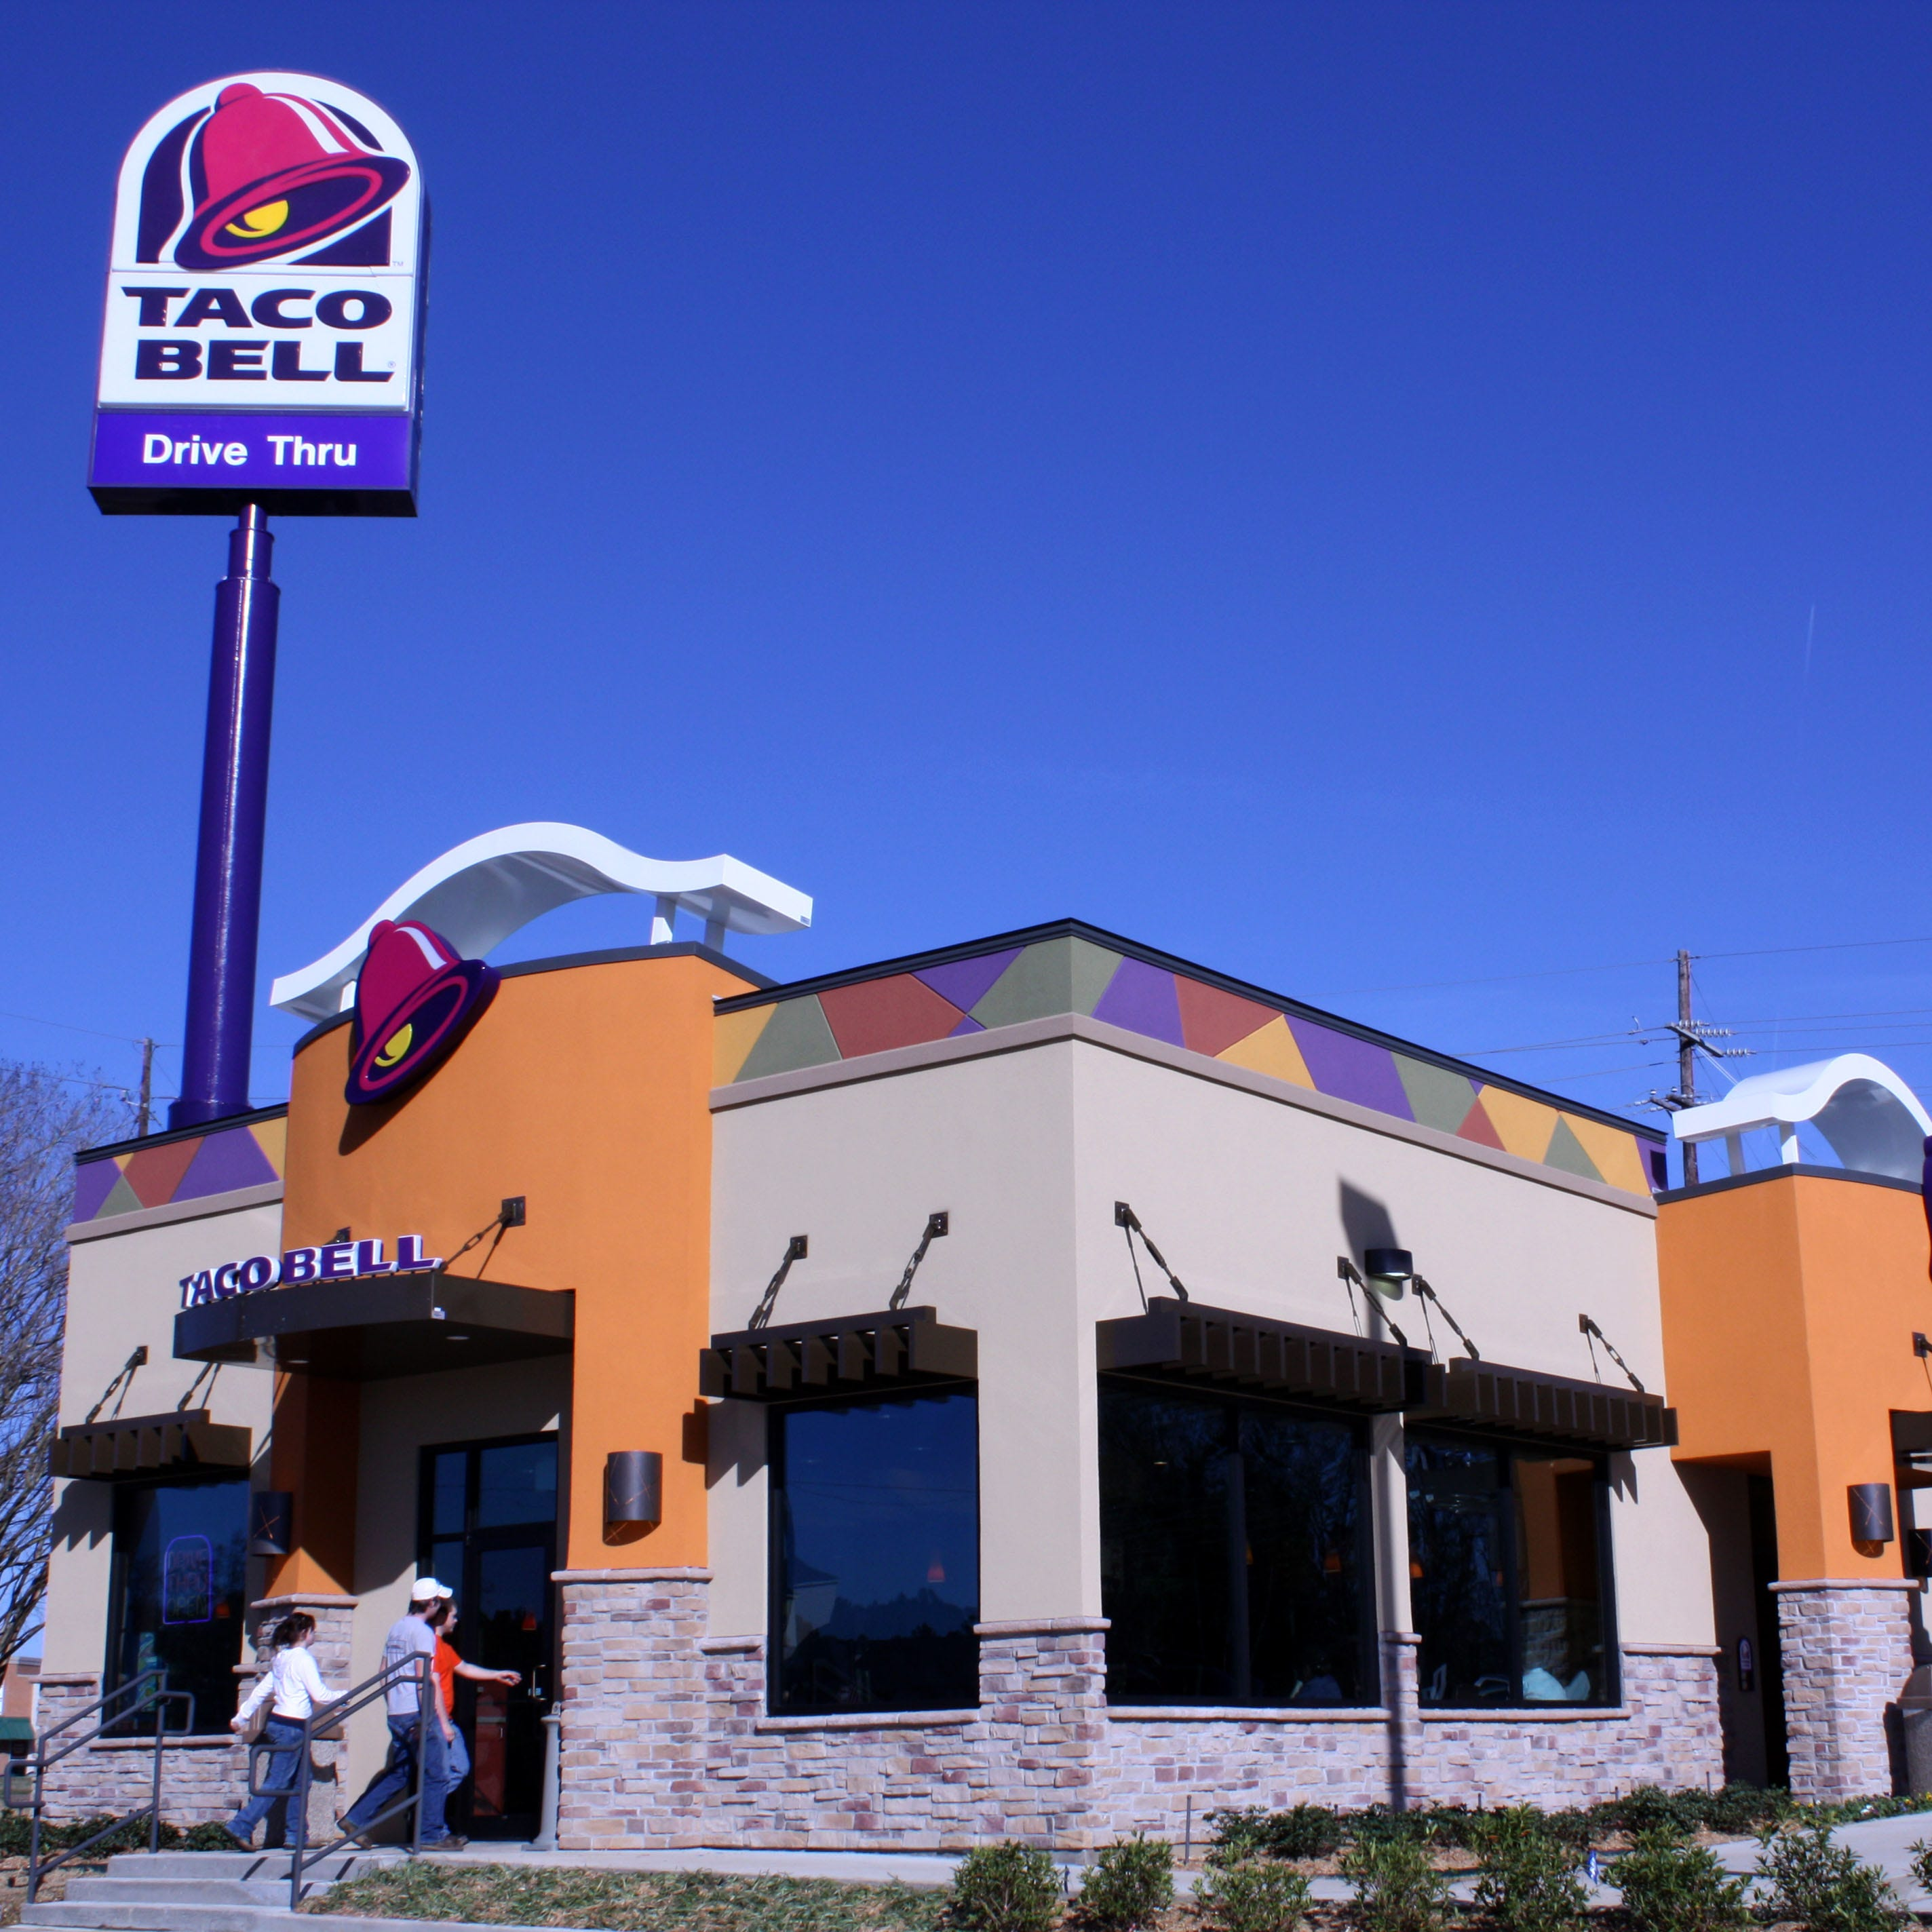 Work started on new Taco Bell in Pineville